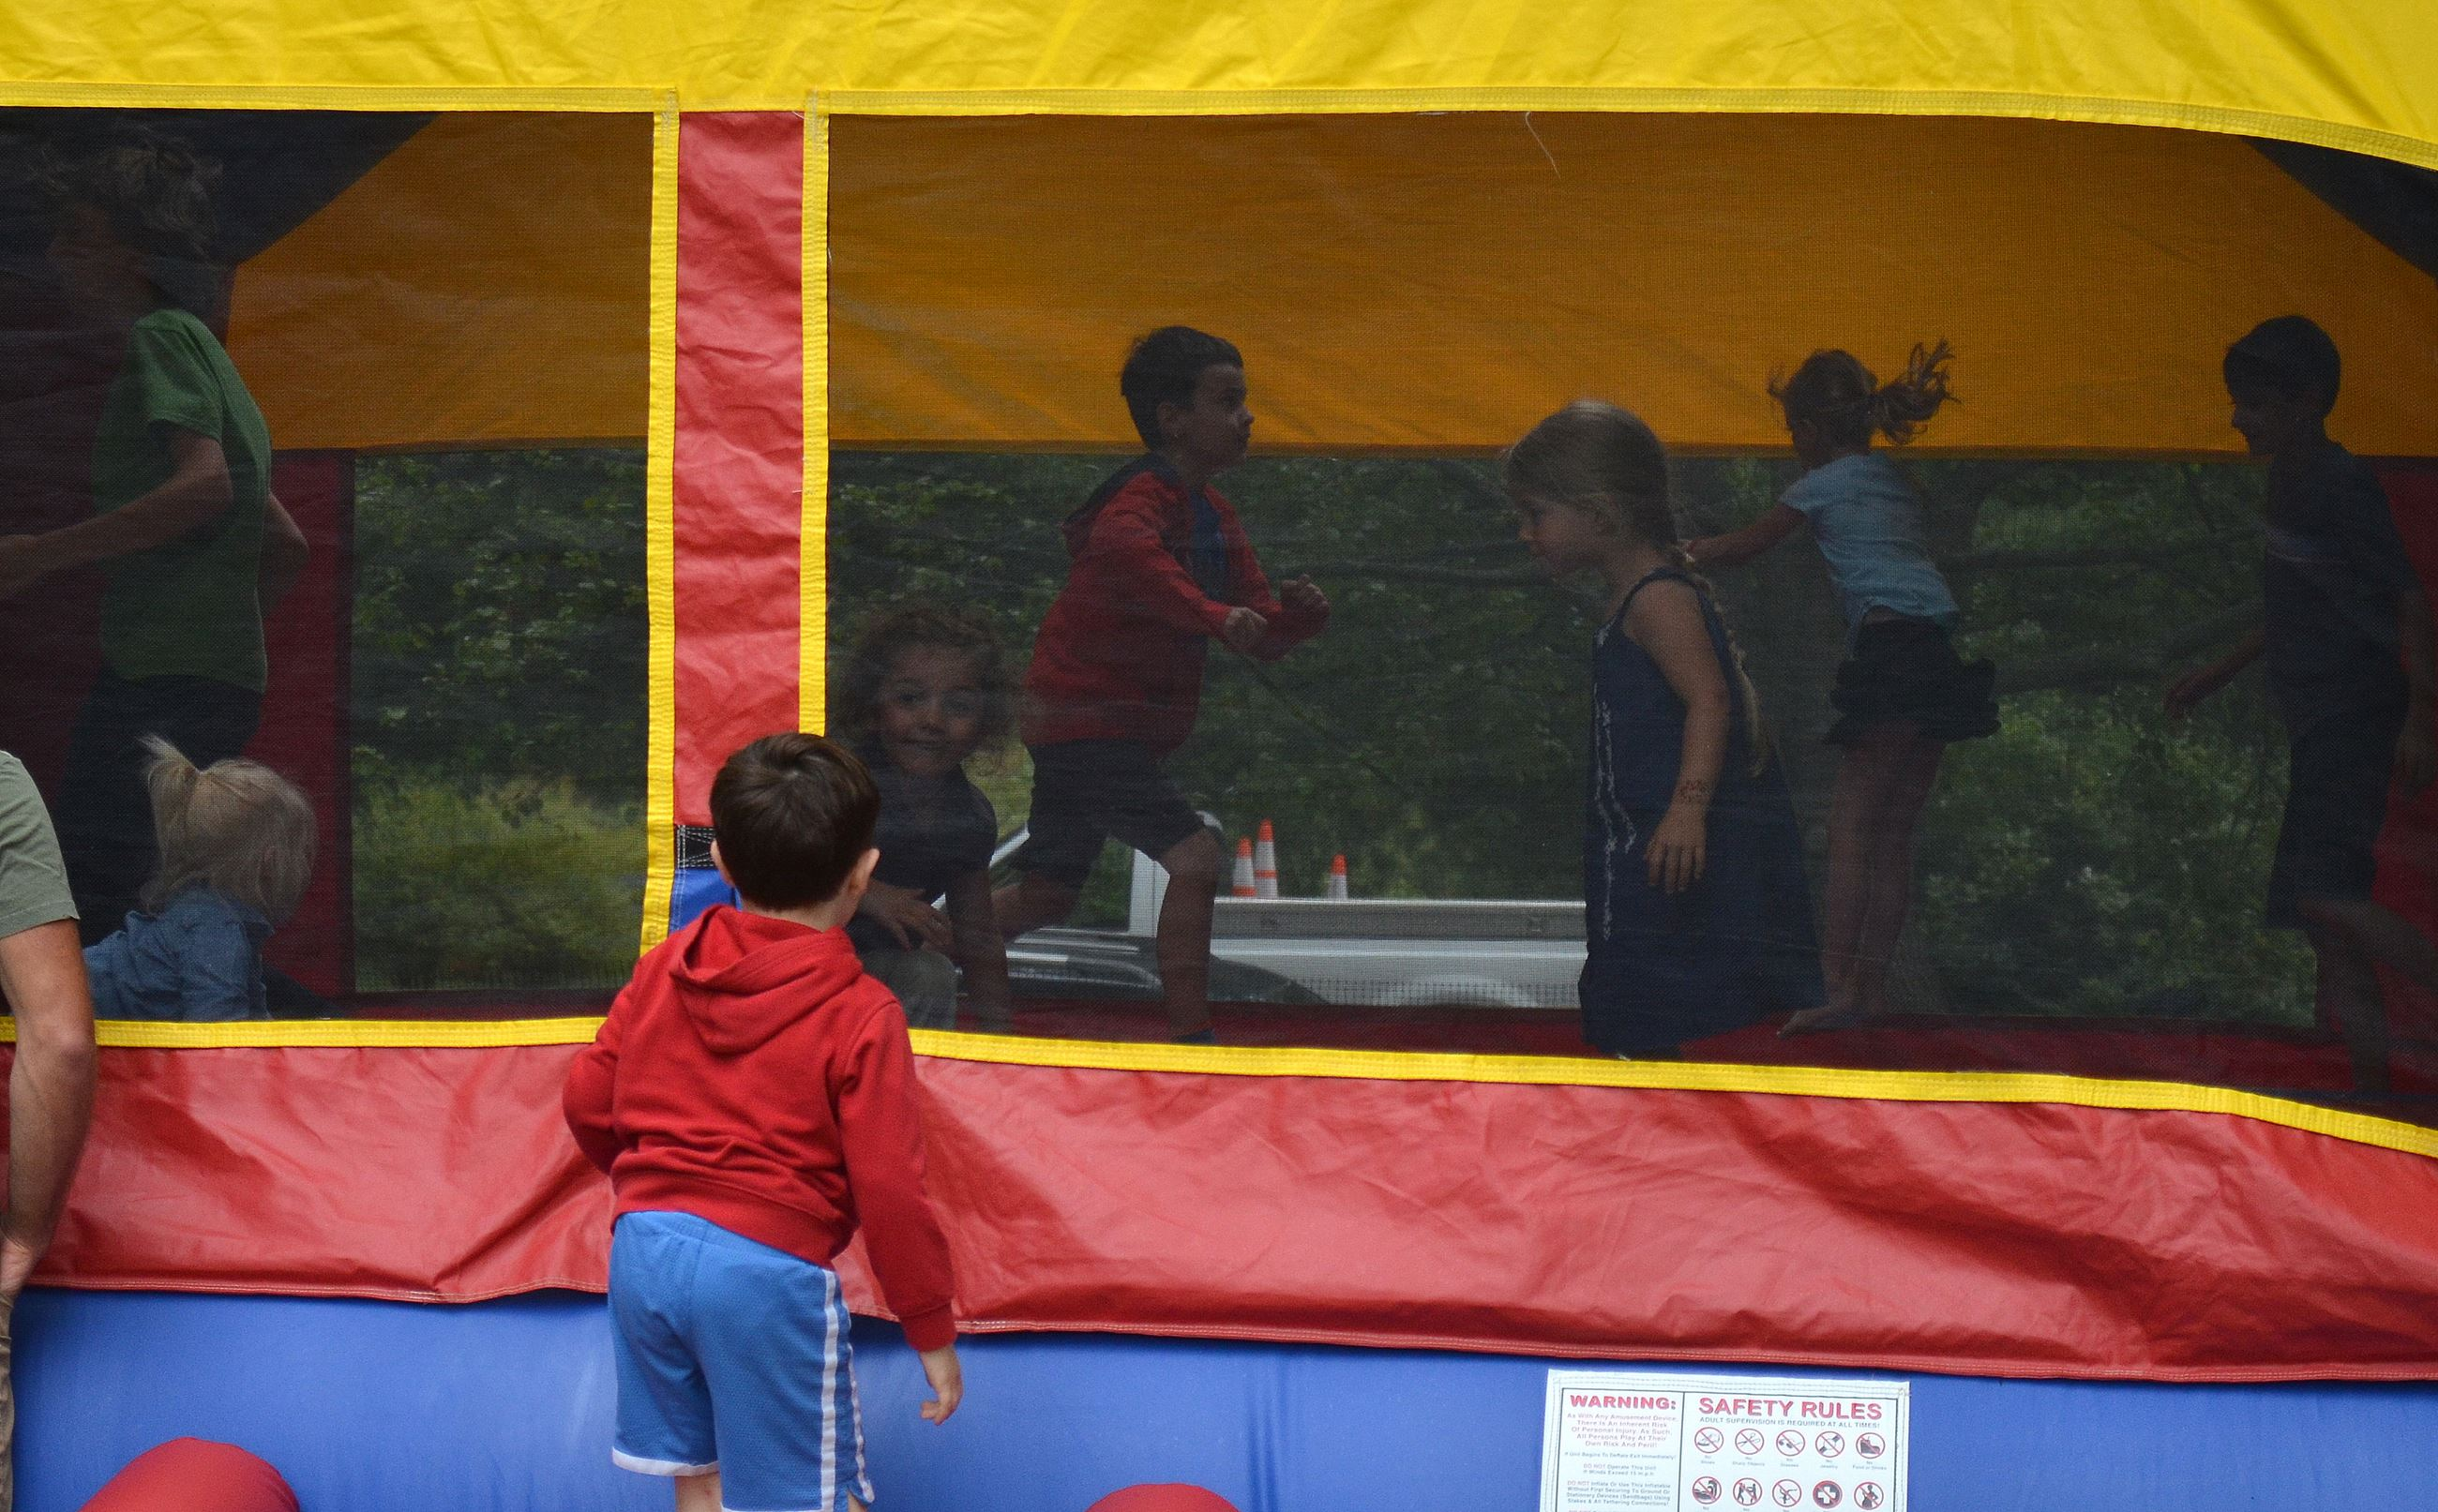 Fun Zone, Moonbounce